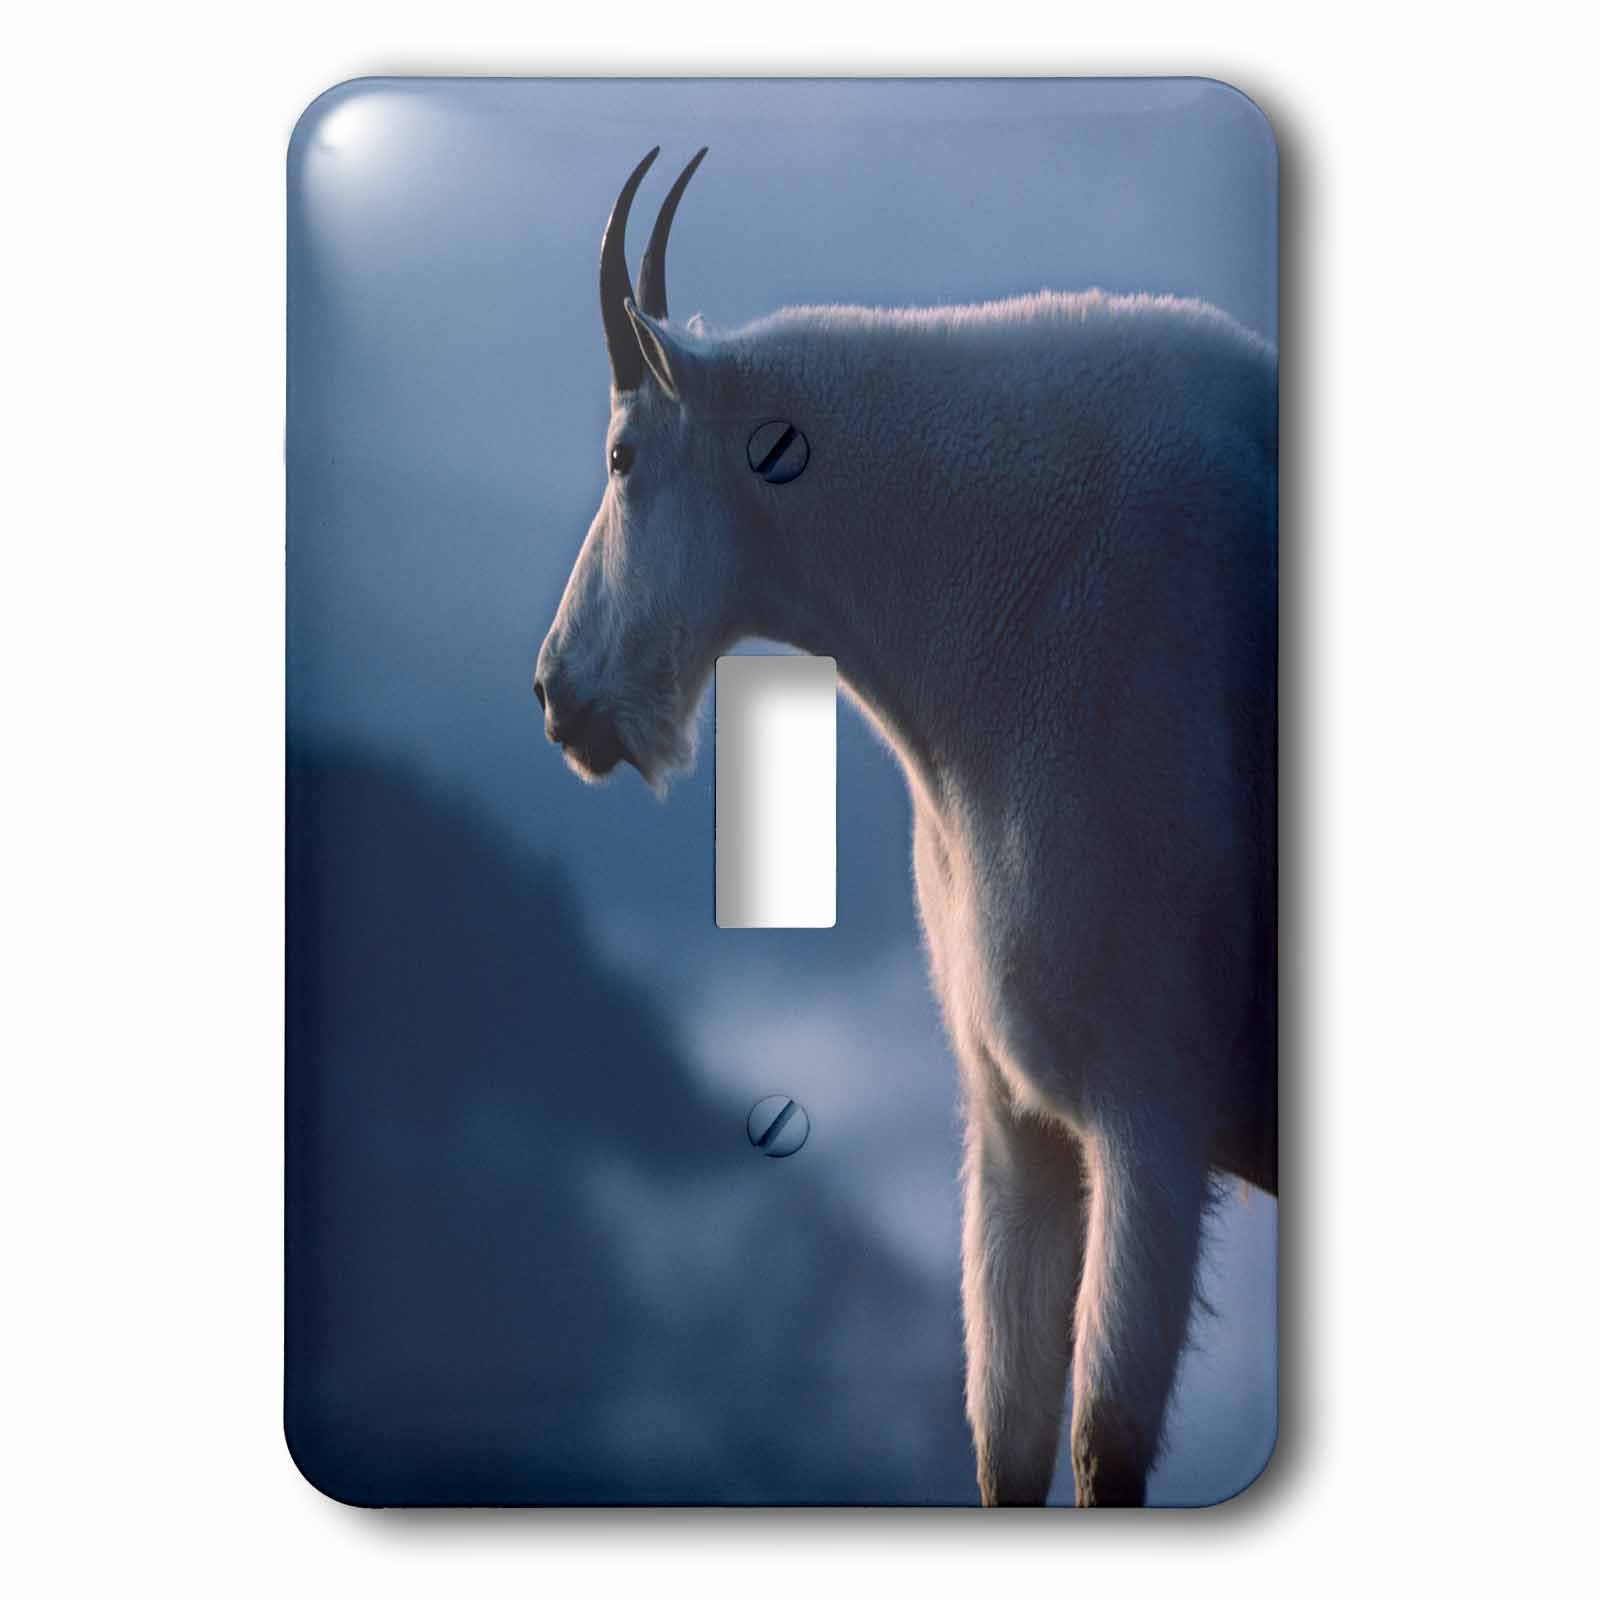 3dRose LSP_260694_1 Mountain Goat, Oreamnos Americanus, Portrait, Wyoming, USA Toggle Switch, Multicolor by 3dRose